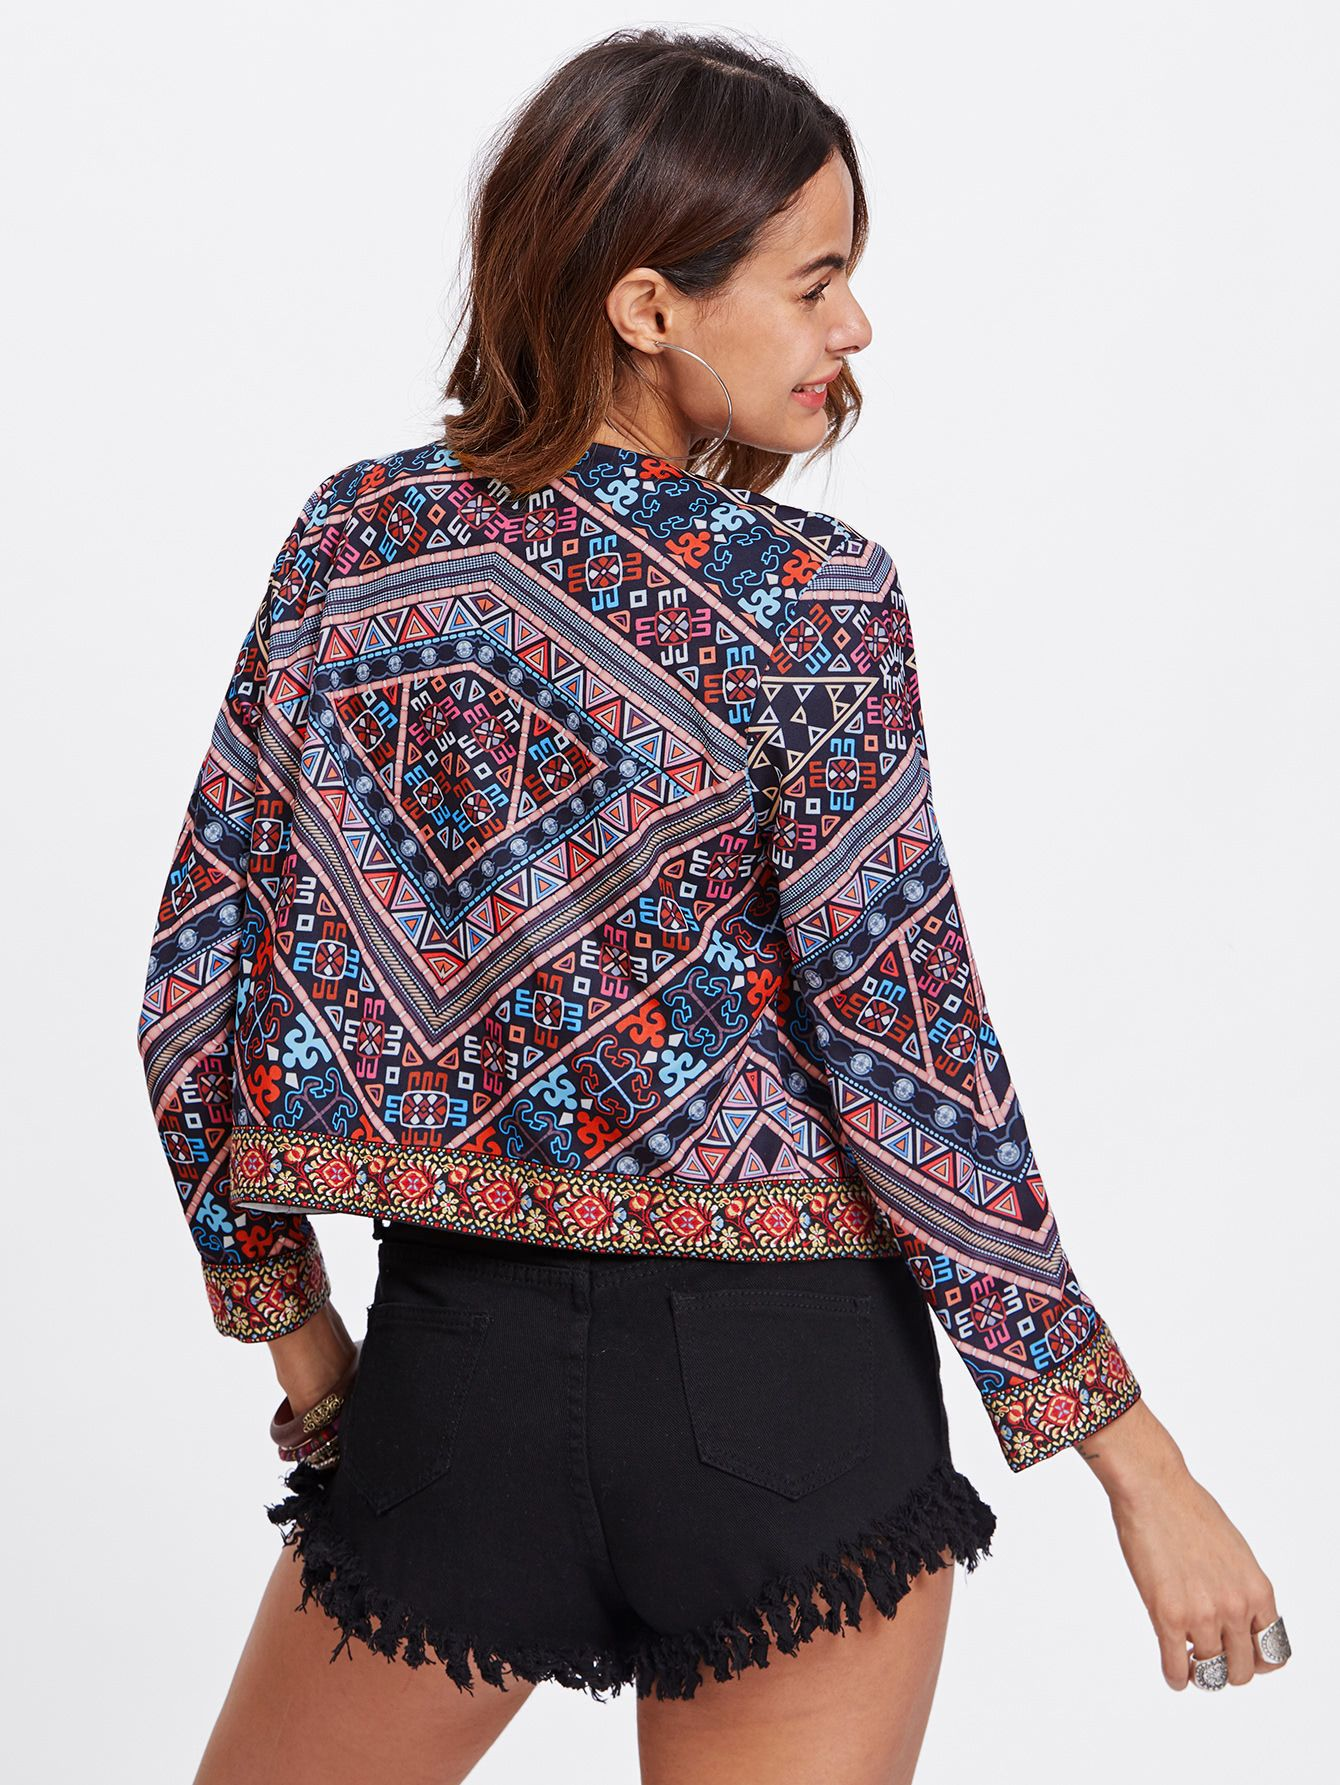 65d8cc98f3 Shop Embroidered Tape Trim Tribal Print Jacket online. SheIn offers Embroidered  Tape Trim Tribal Print Jacket & more to fit your fashionable needs.